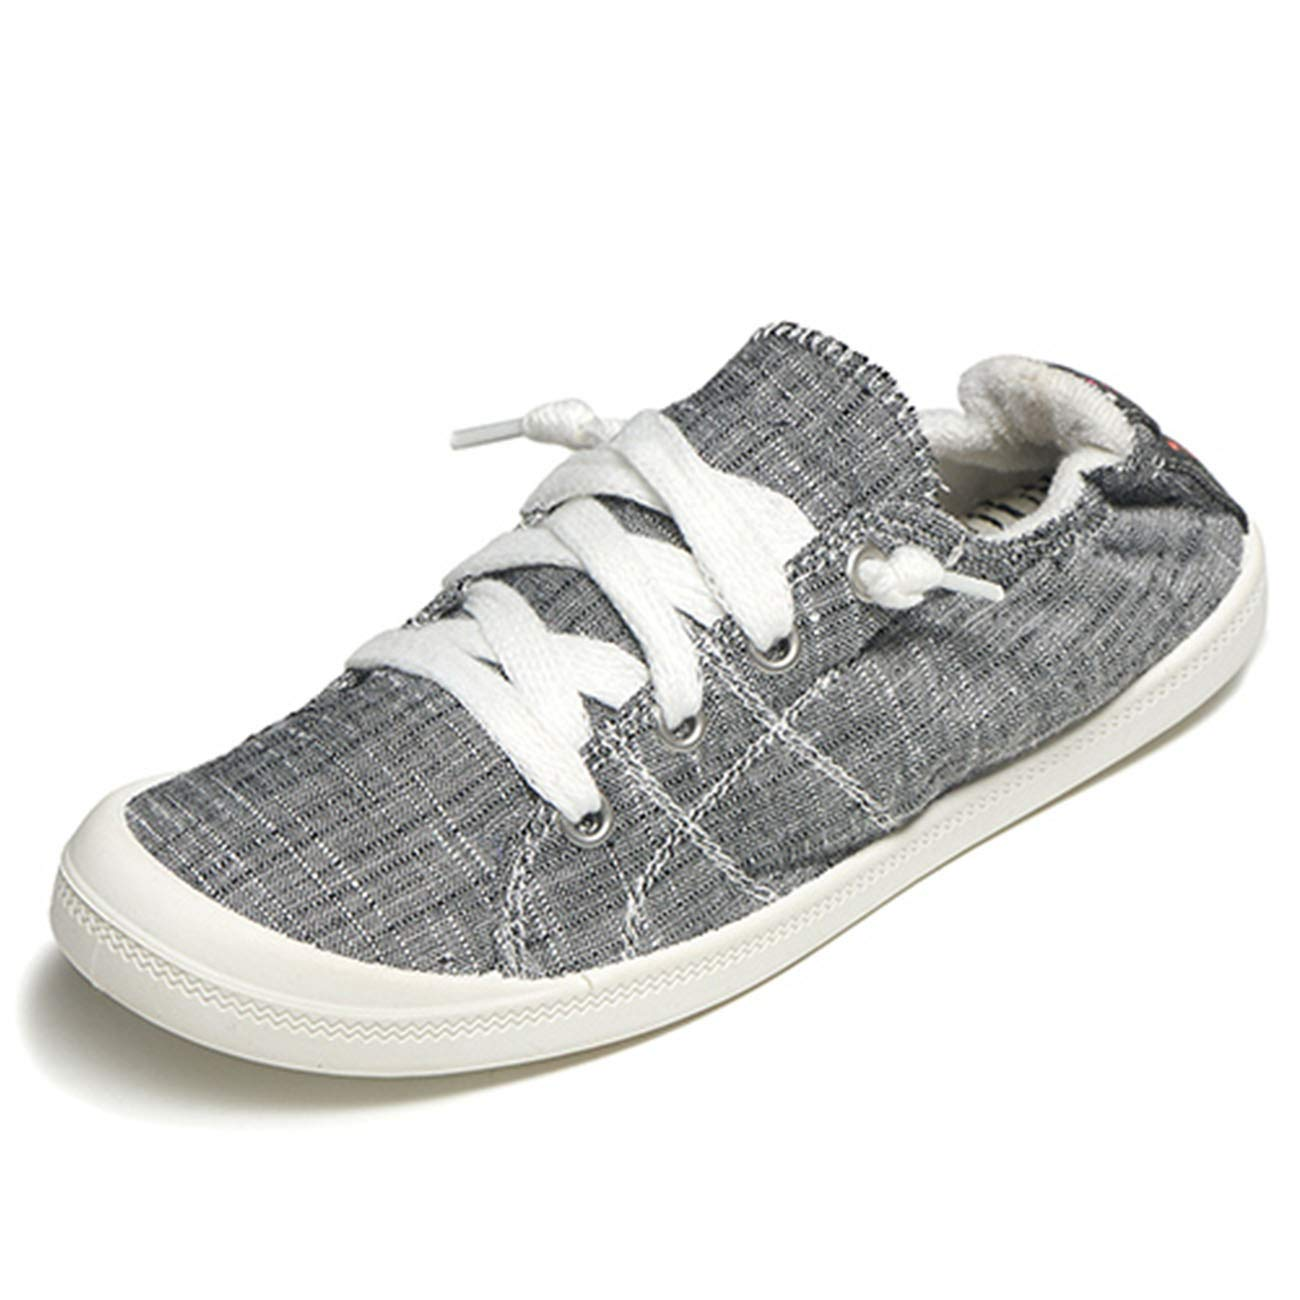 Comfy Canvas Loafers